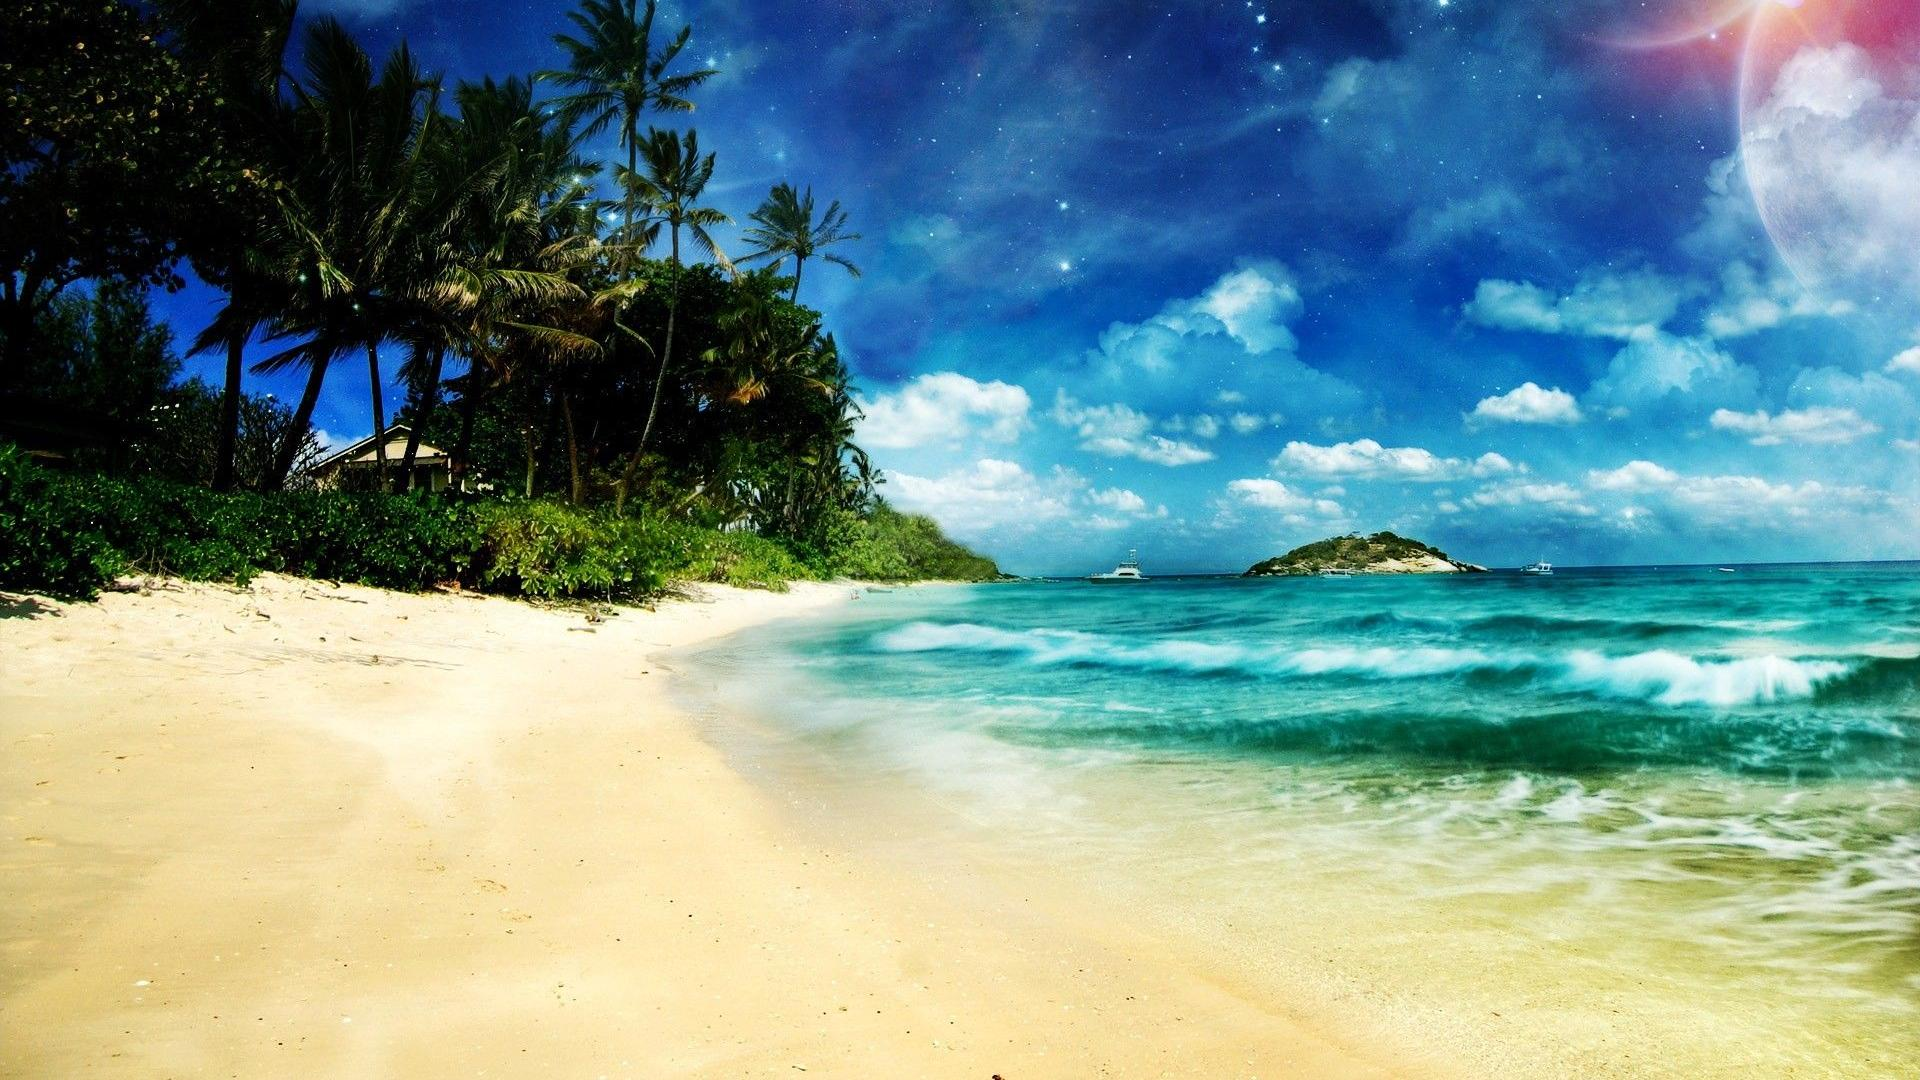 Cool Beach Wallpapers Images amp Pictures   Becuo 1920x1080